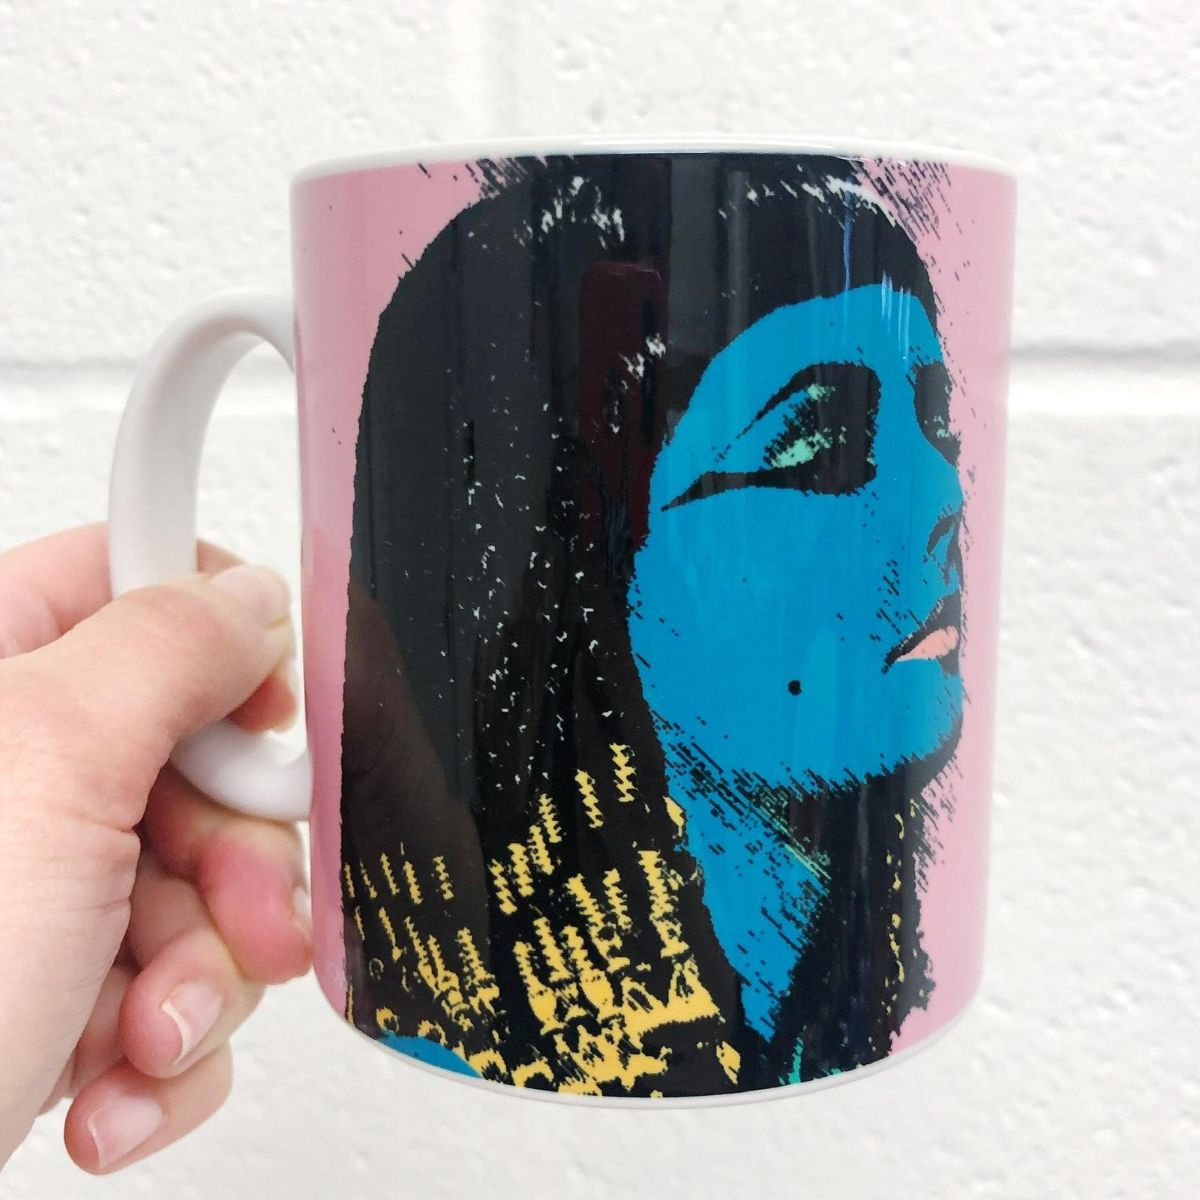 Personalised text on your mug